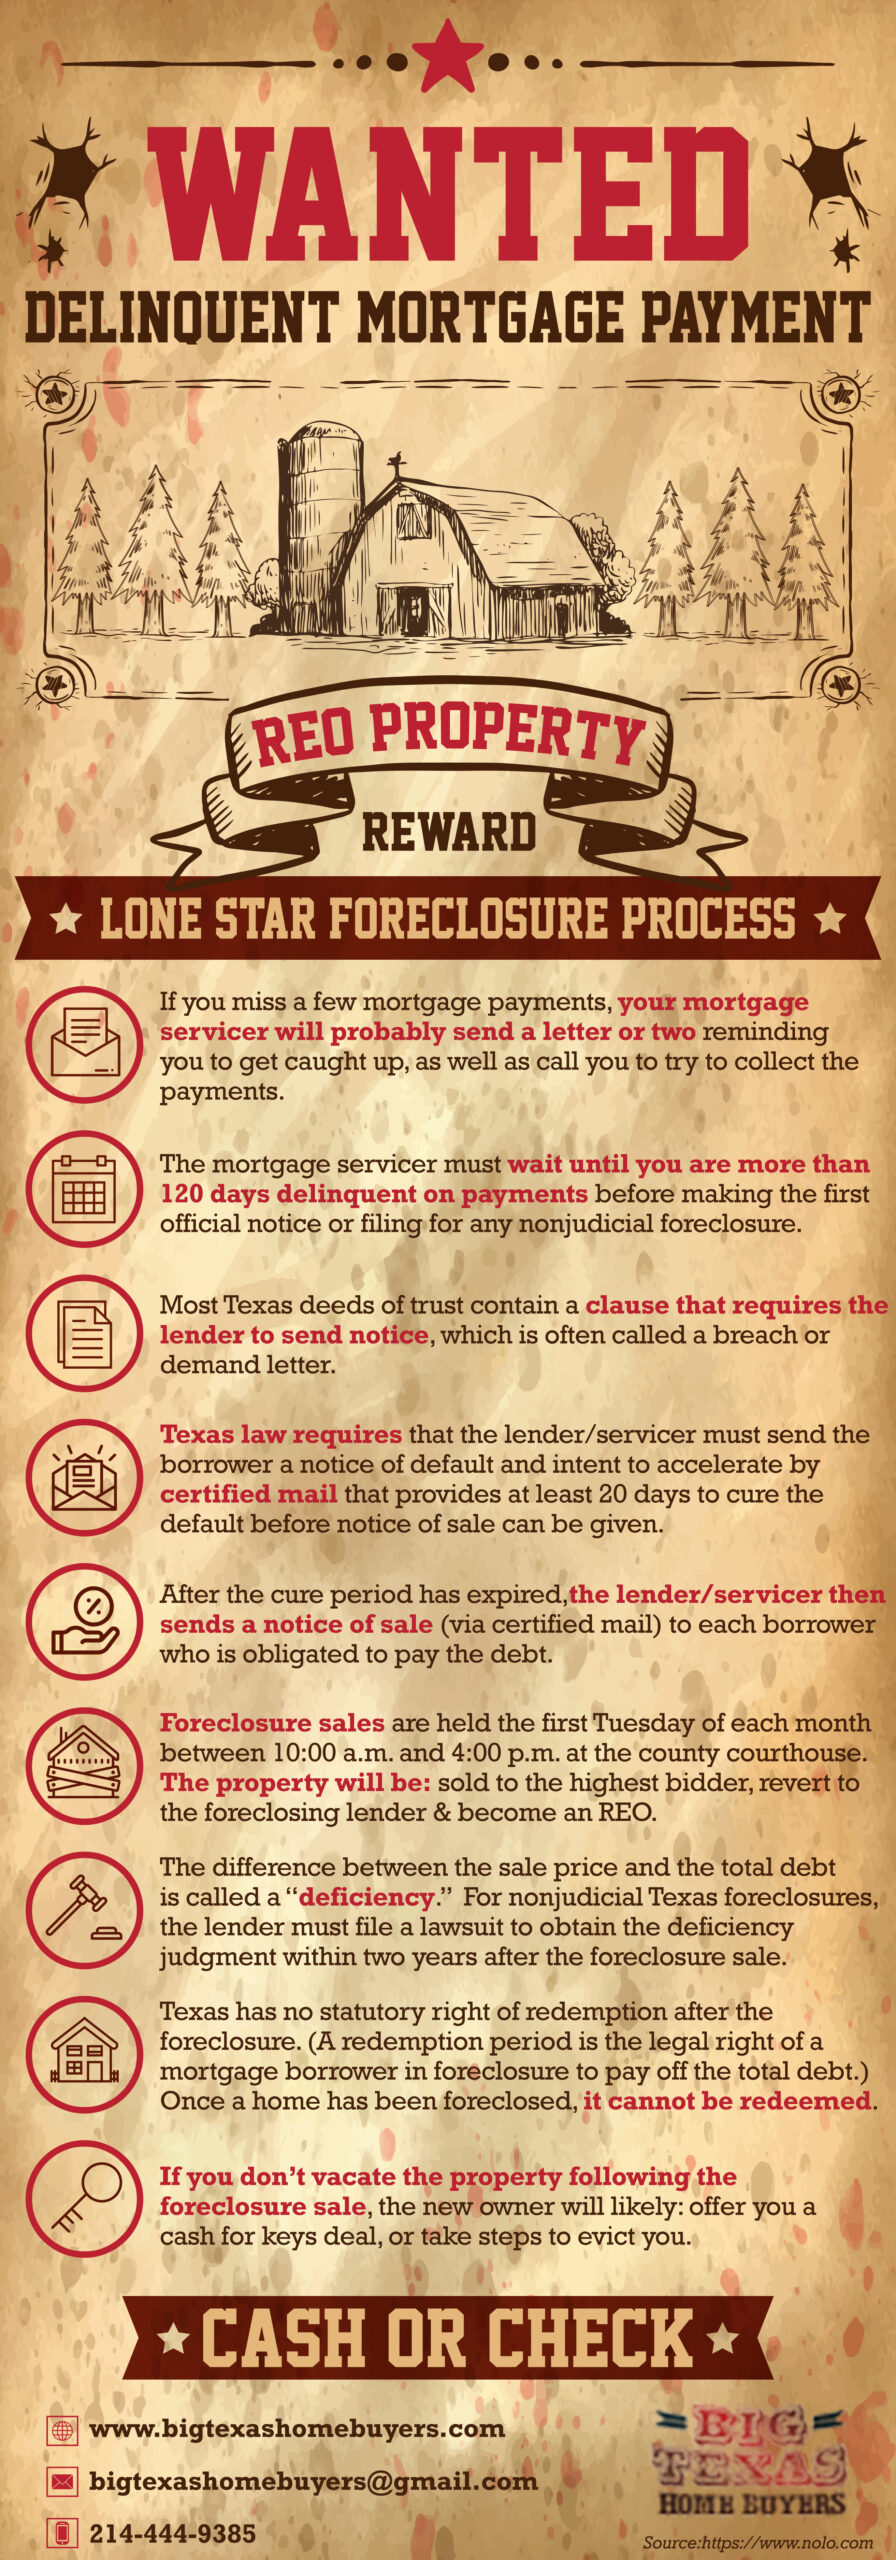 Texas Foreclosure Process